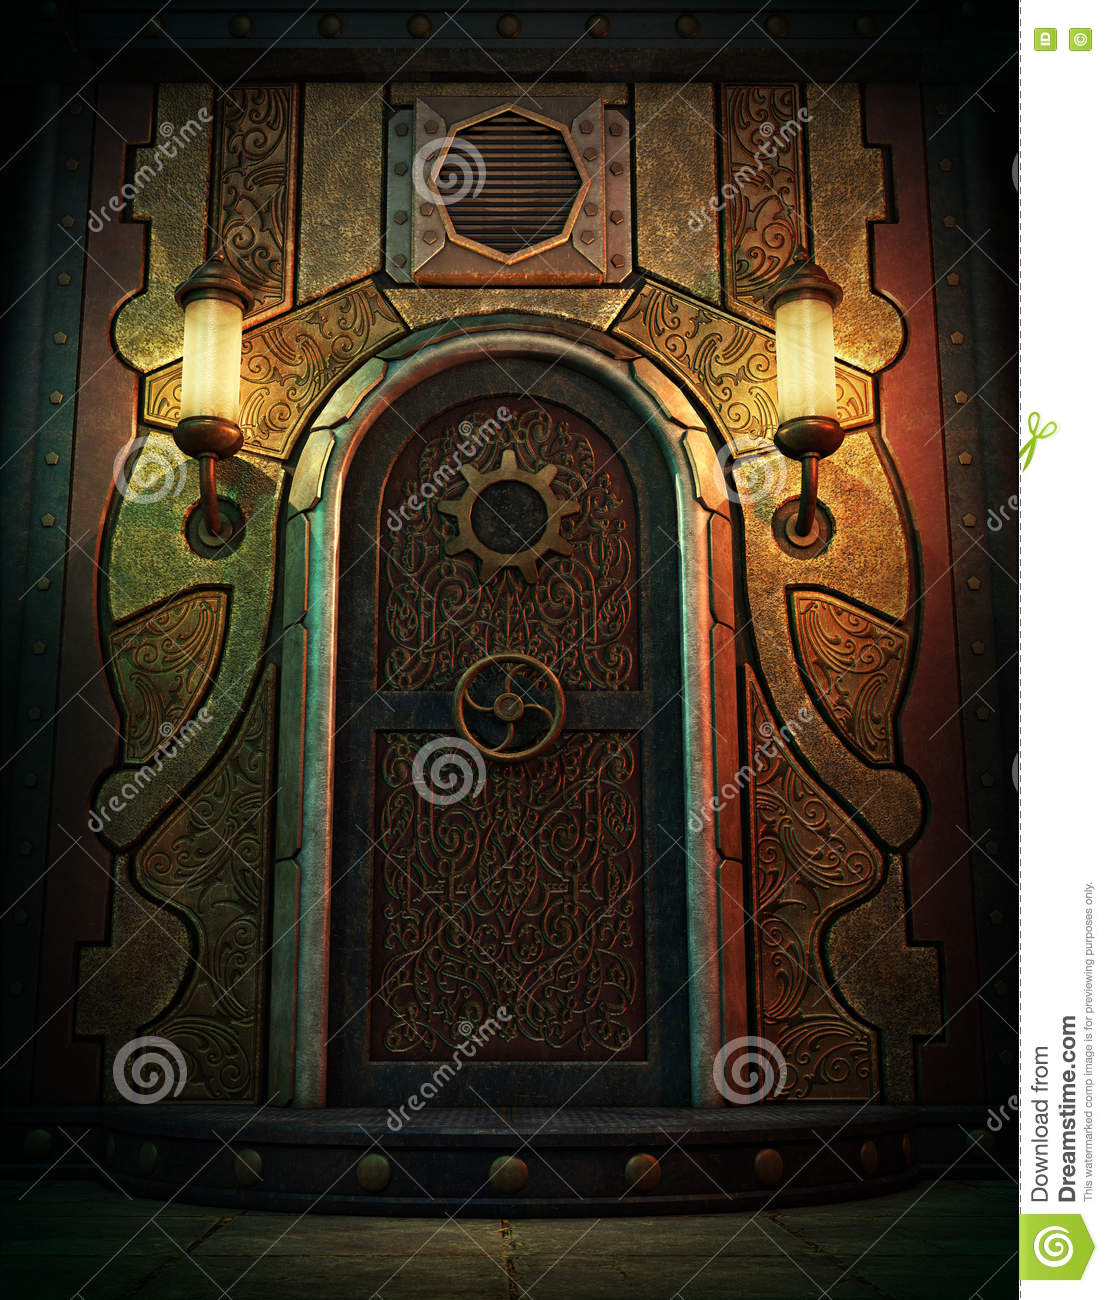 Royalty-Free Illustration & The Vault Door 3d CG stock illustration. Image of graphics - 76092456 pezcame.com